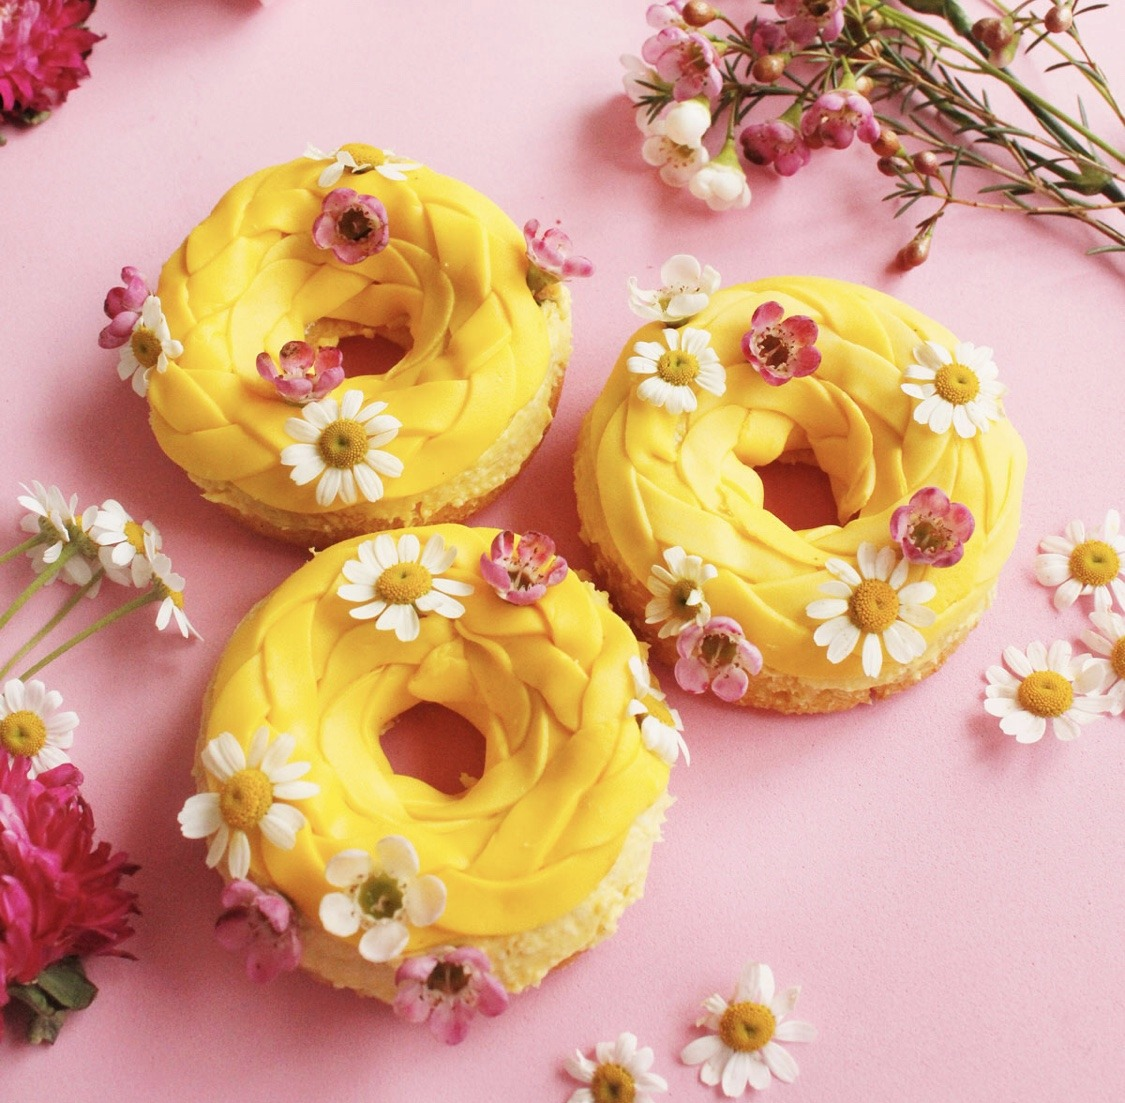 Make Your Own Rapunzel Themed Donuts! #DisneyPrincess 1